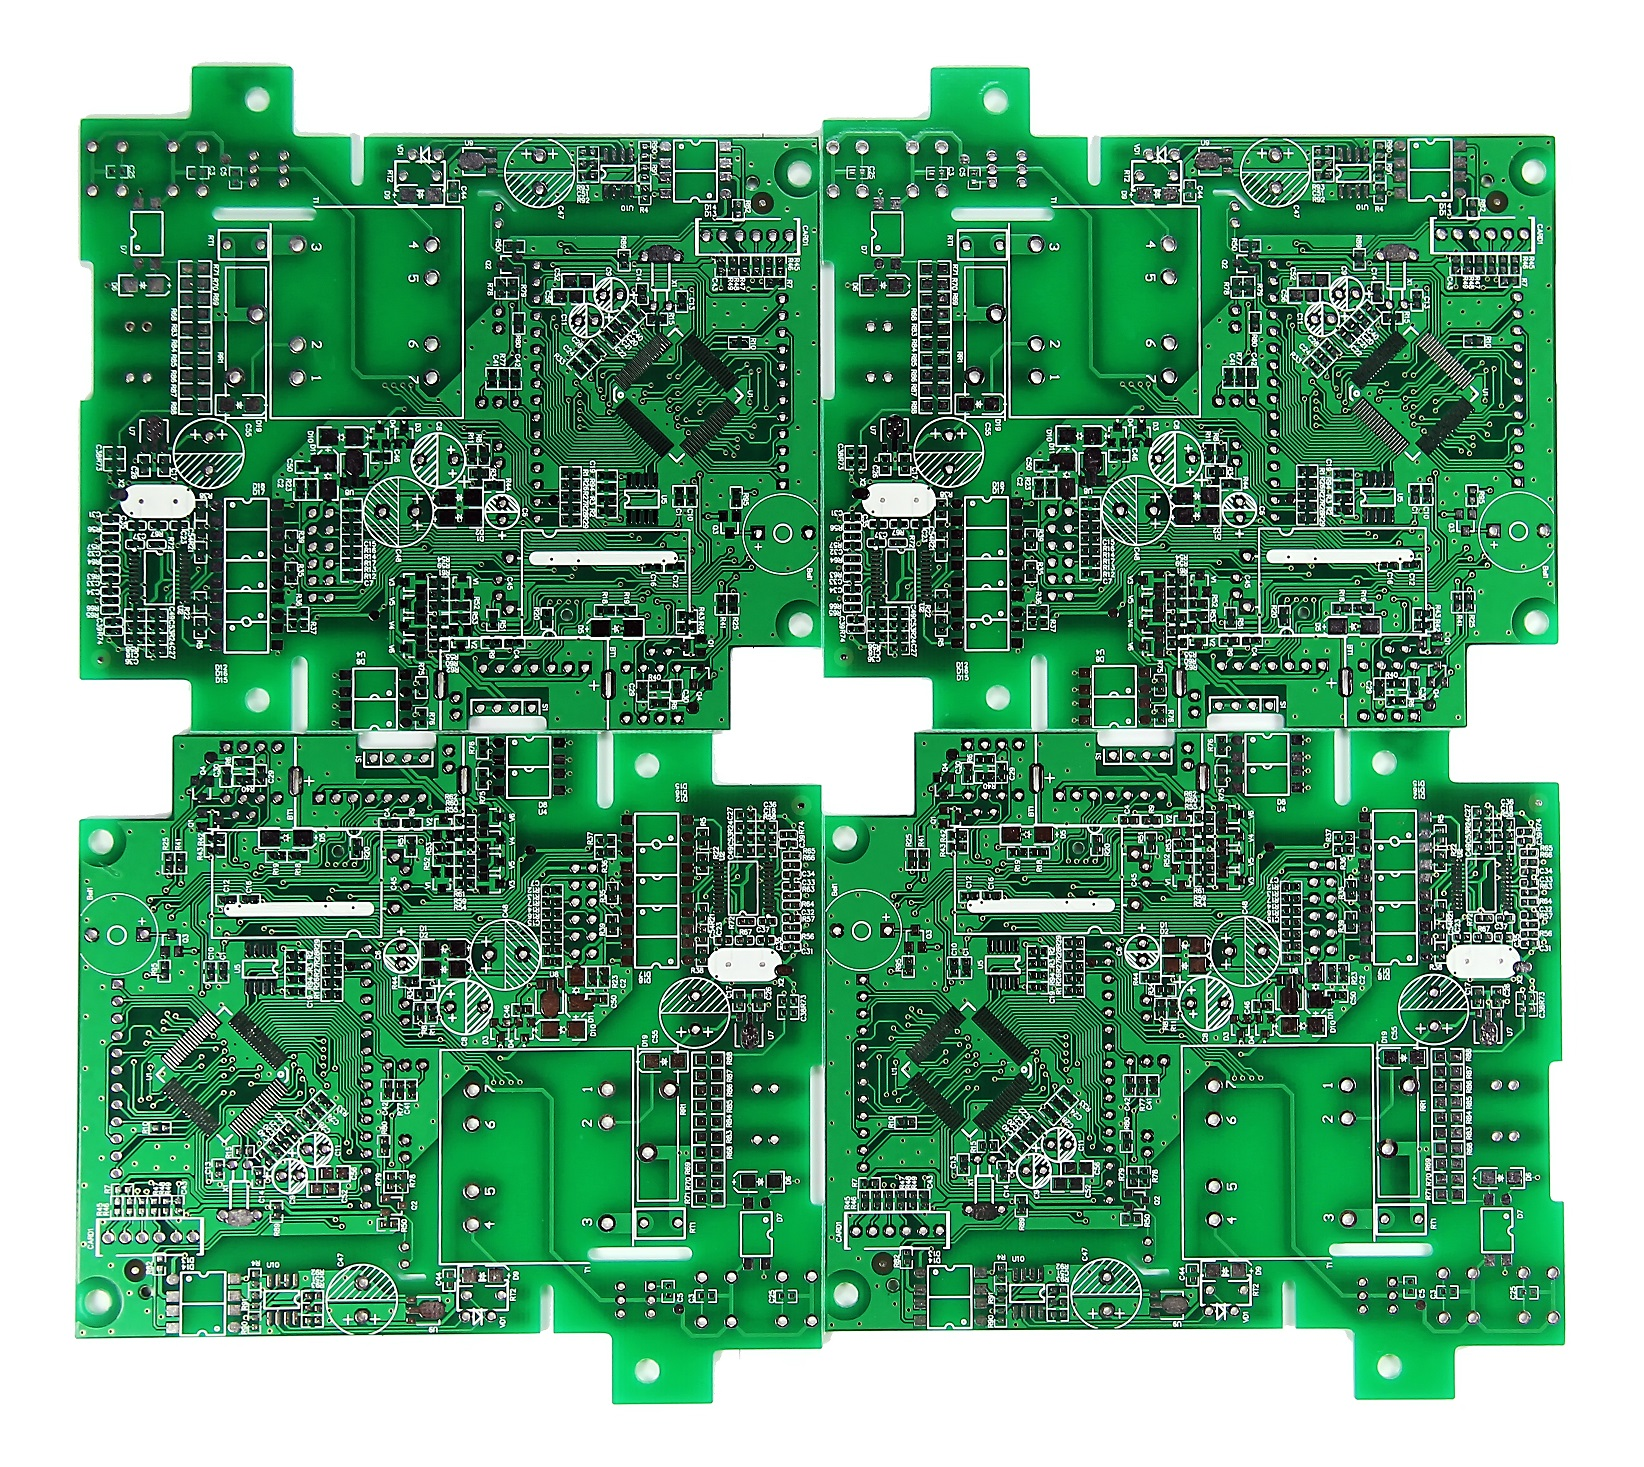 Ibe Electronics Usa Llc Hillsboro Oregon Or 97124 Assembly For Industrial Control One Stop Printed Circuit Board 2 Layers Meter Pcb